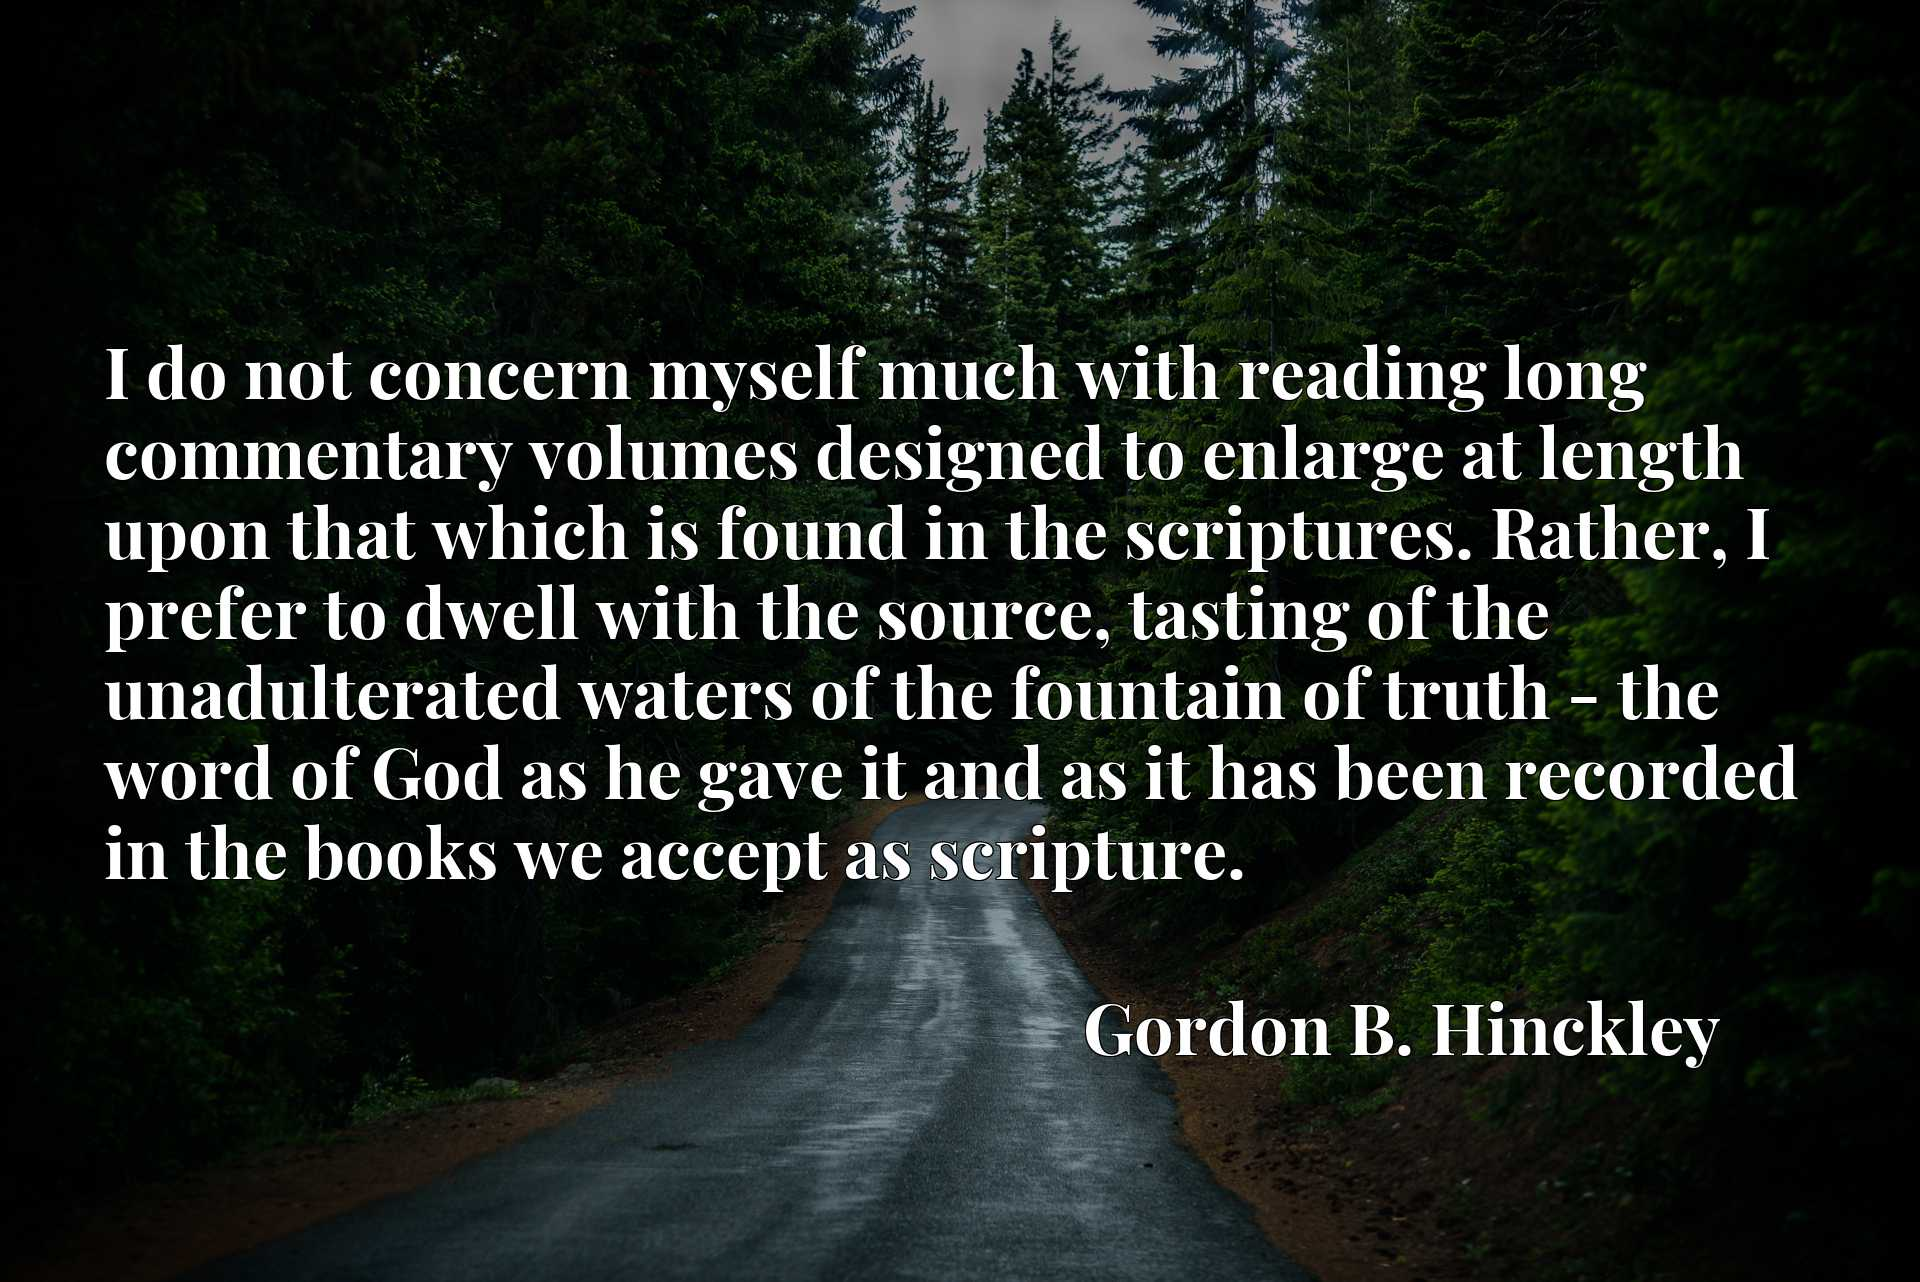 I do not concern myself much with reading long commentary volumes designed to enlarge at length upon that which is found in the scriptures. Rather, I prefer to dwell with the source, tasting of the unadulterated waters of the fountain of truth - the word of God as he gave it and as it has been recorded in the books we accept as scripture.